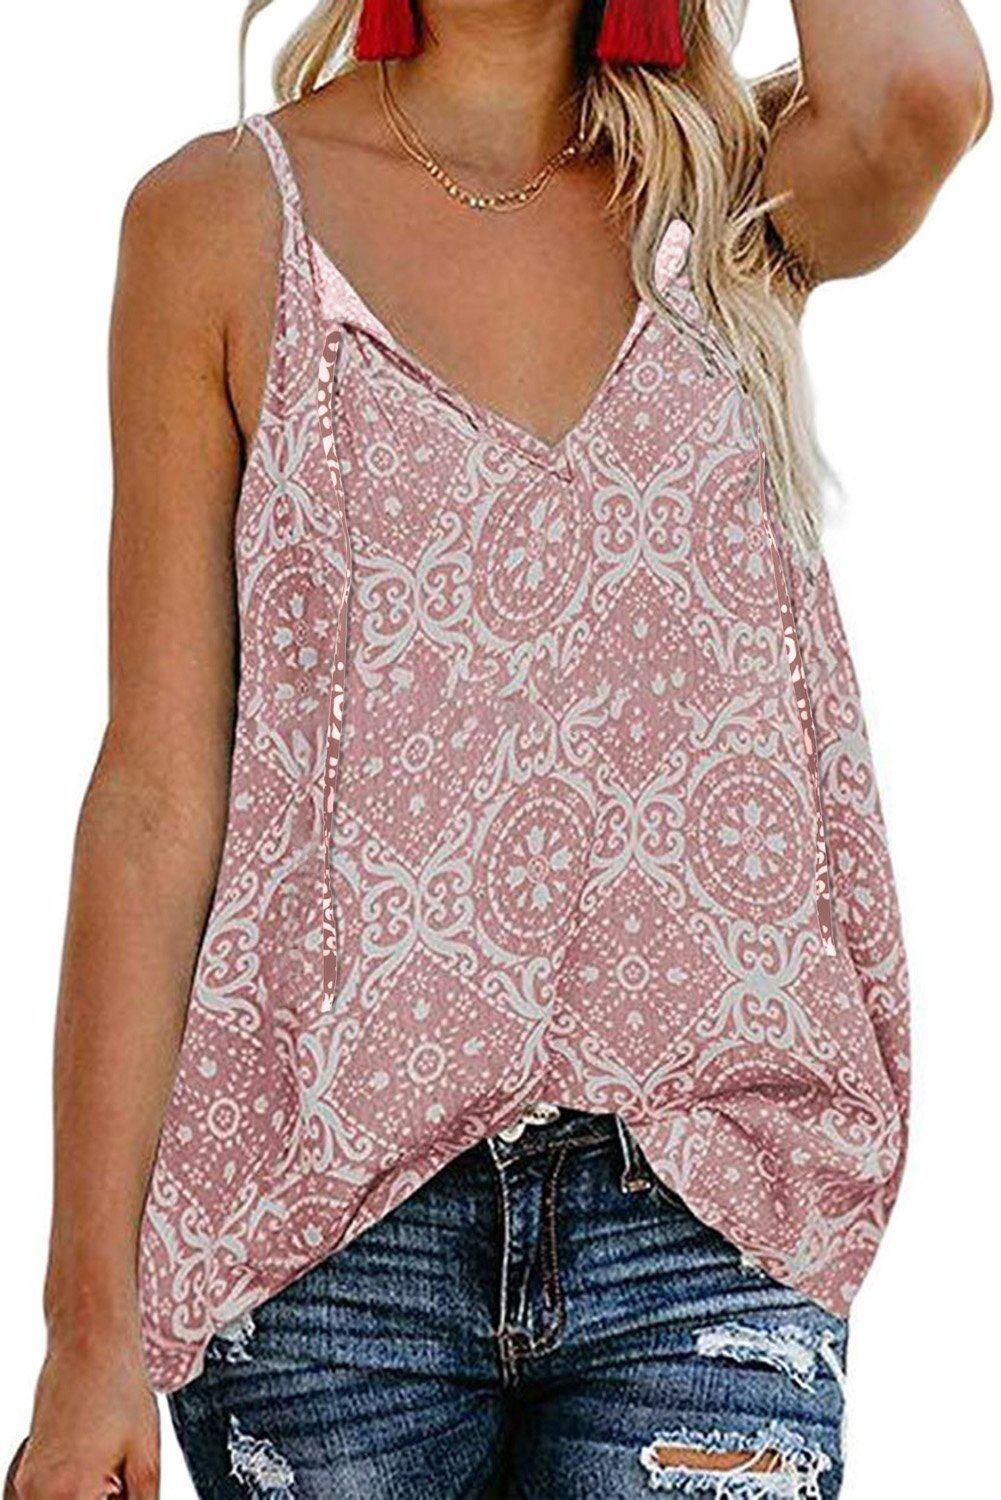 Necessary pink boho tank top Blouses & Shirts Teal Demeter